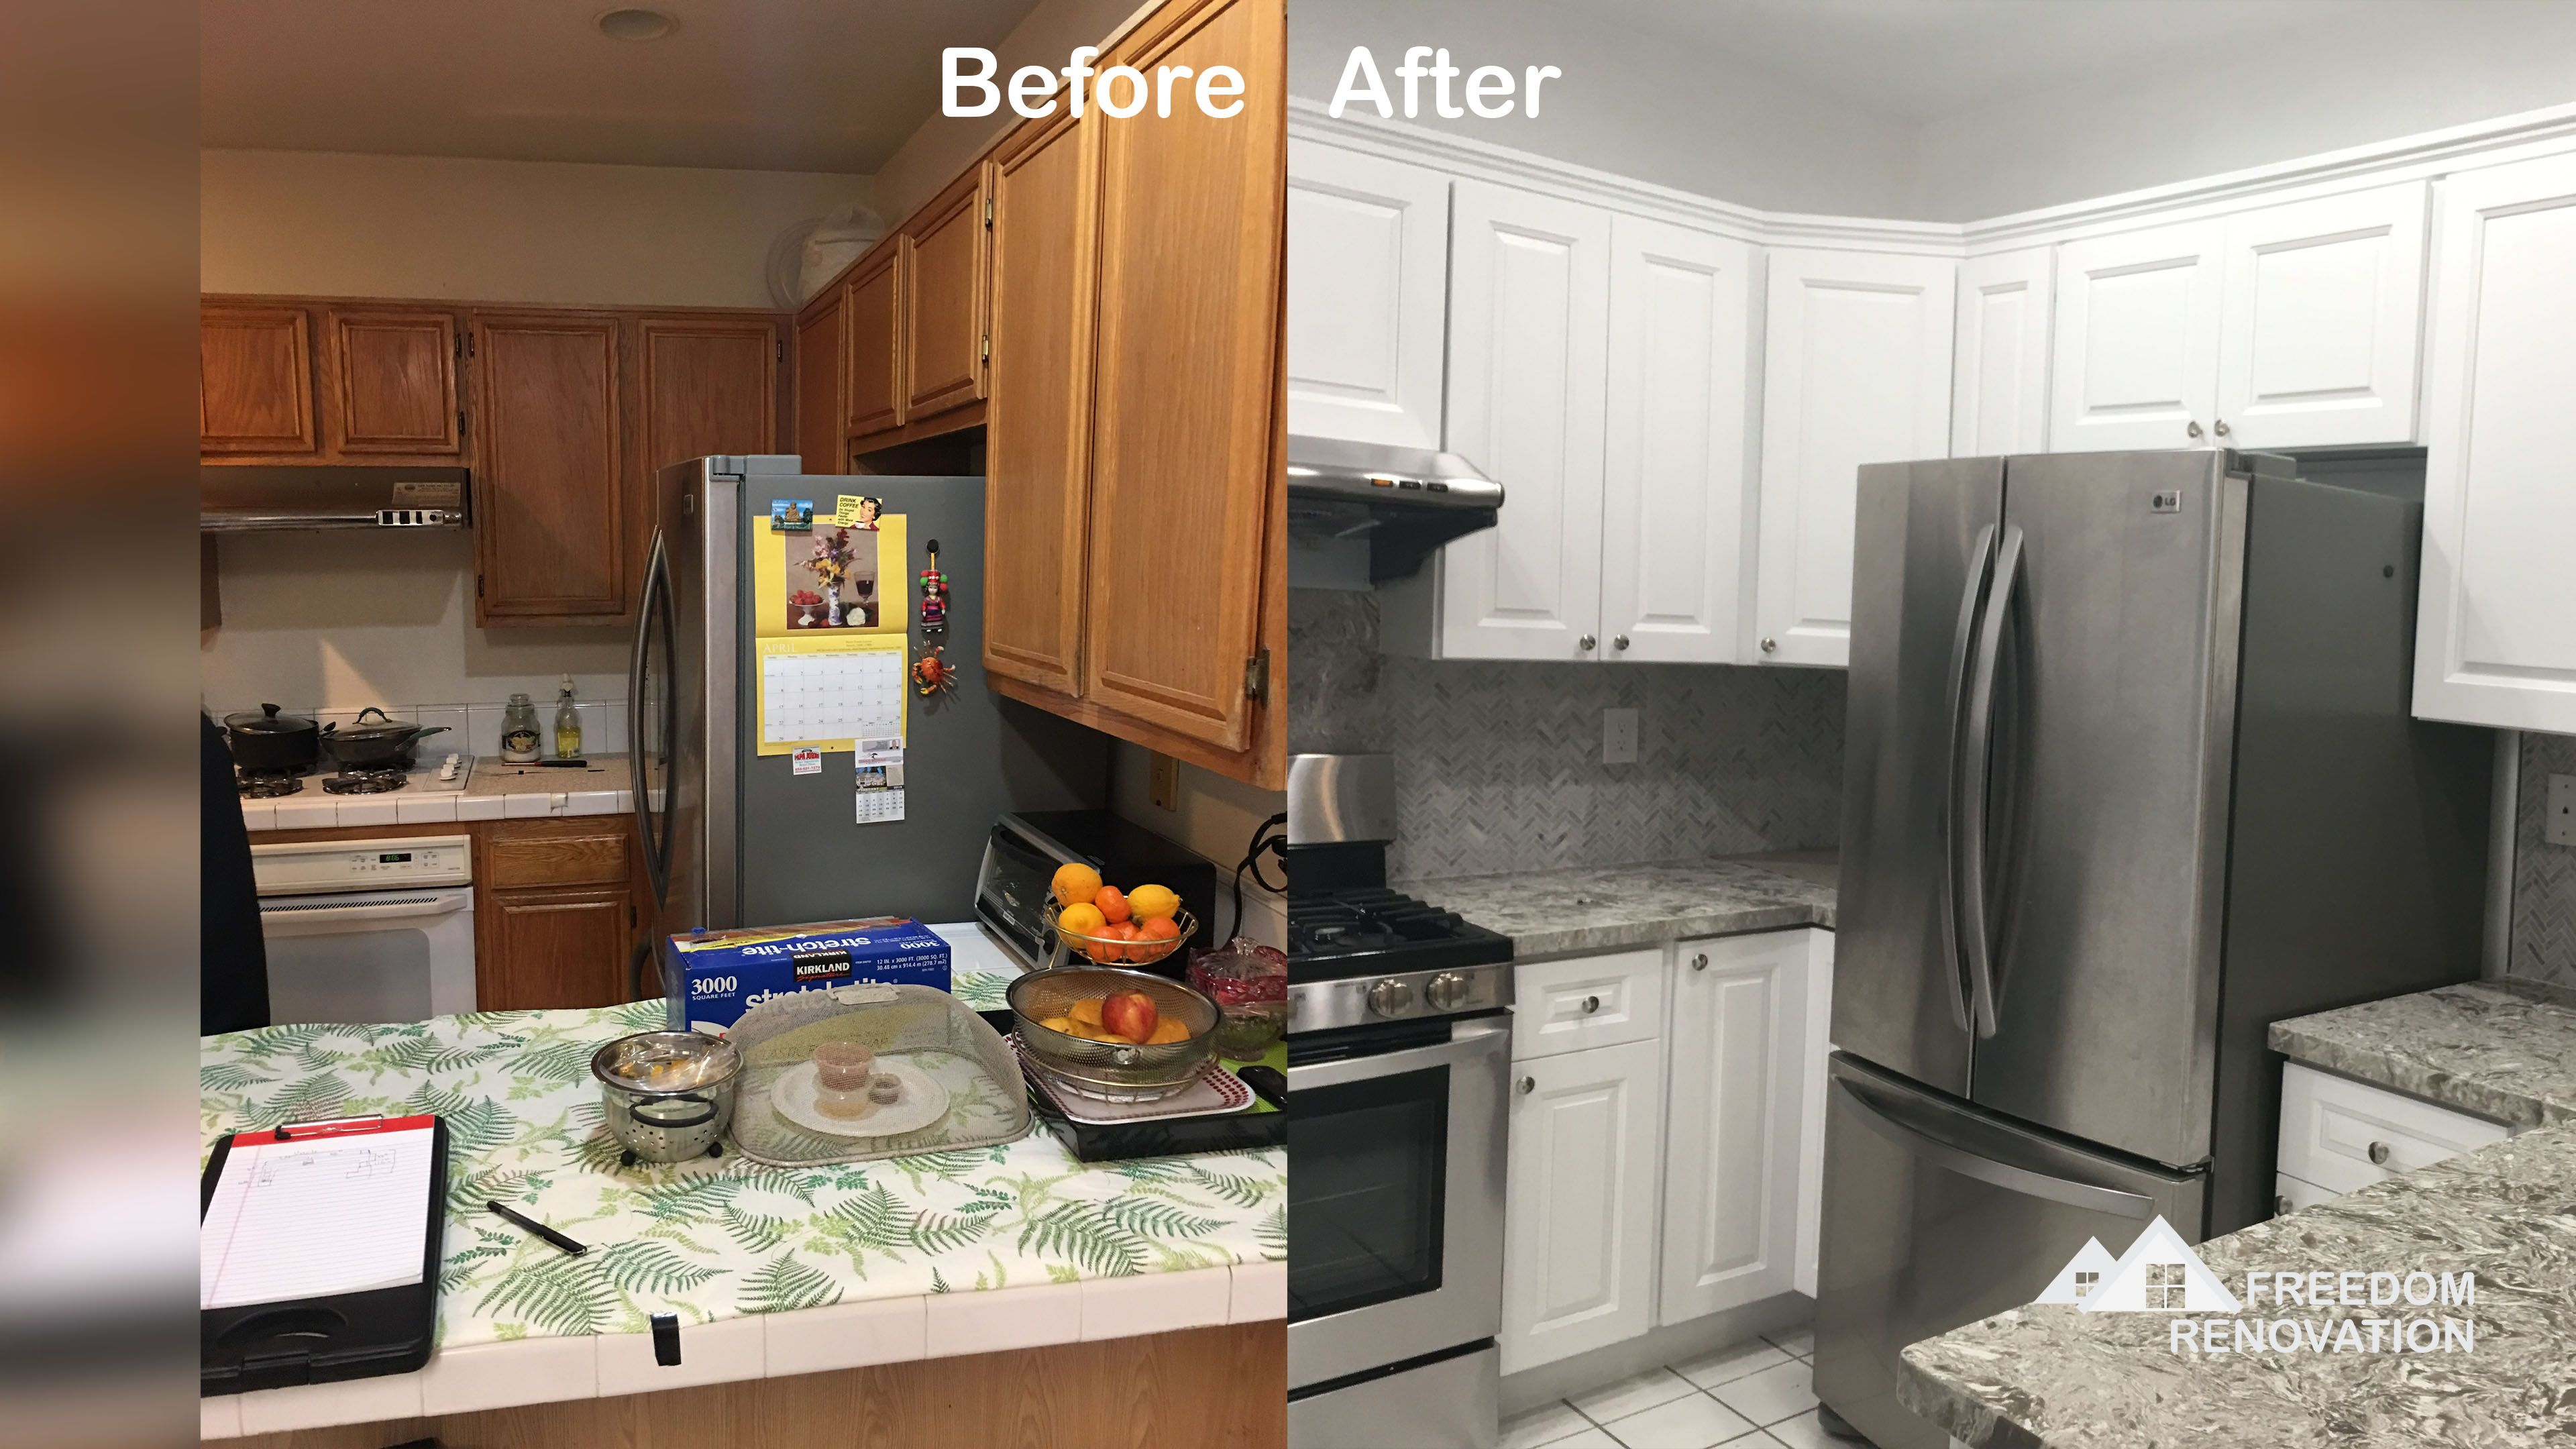 Before And After Of A Kitchen Remodel Brought To You